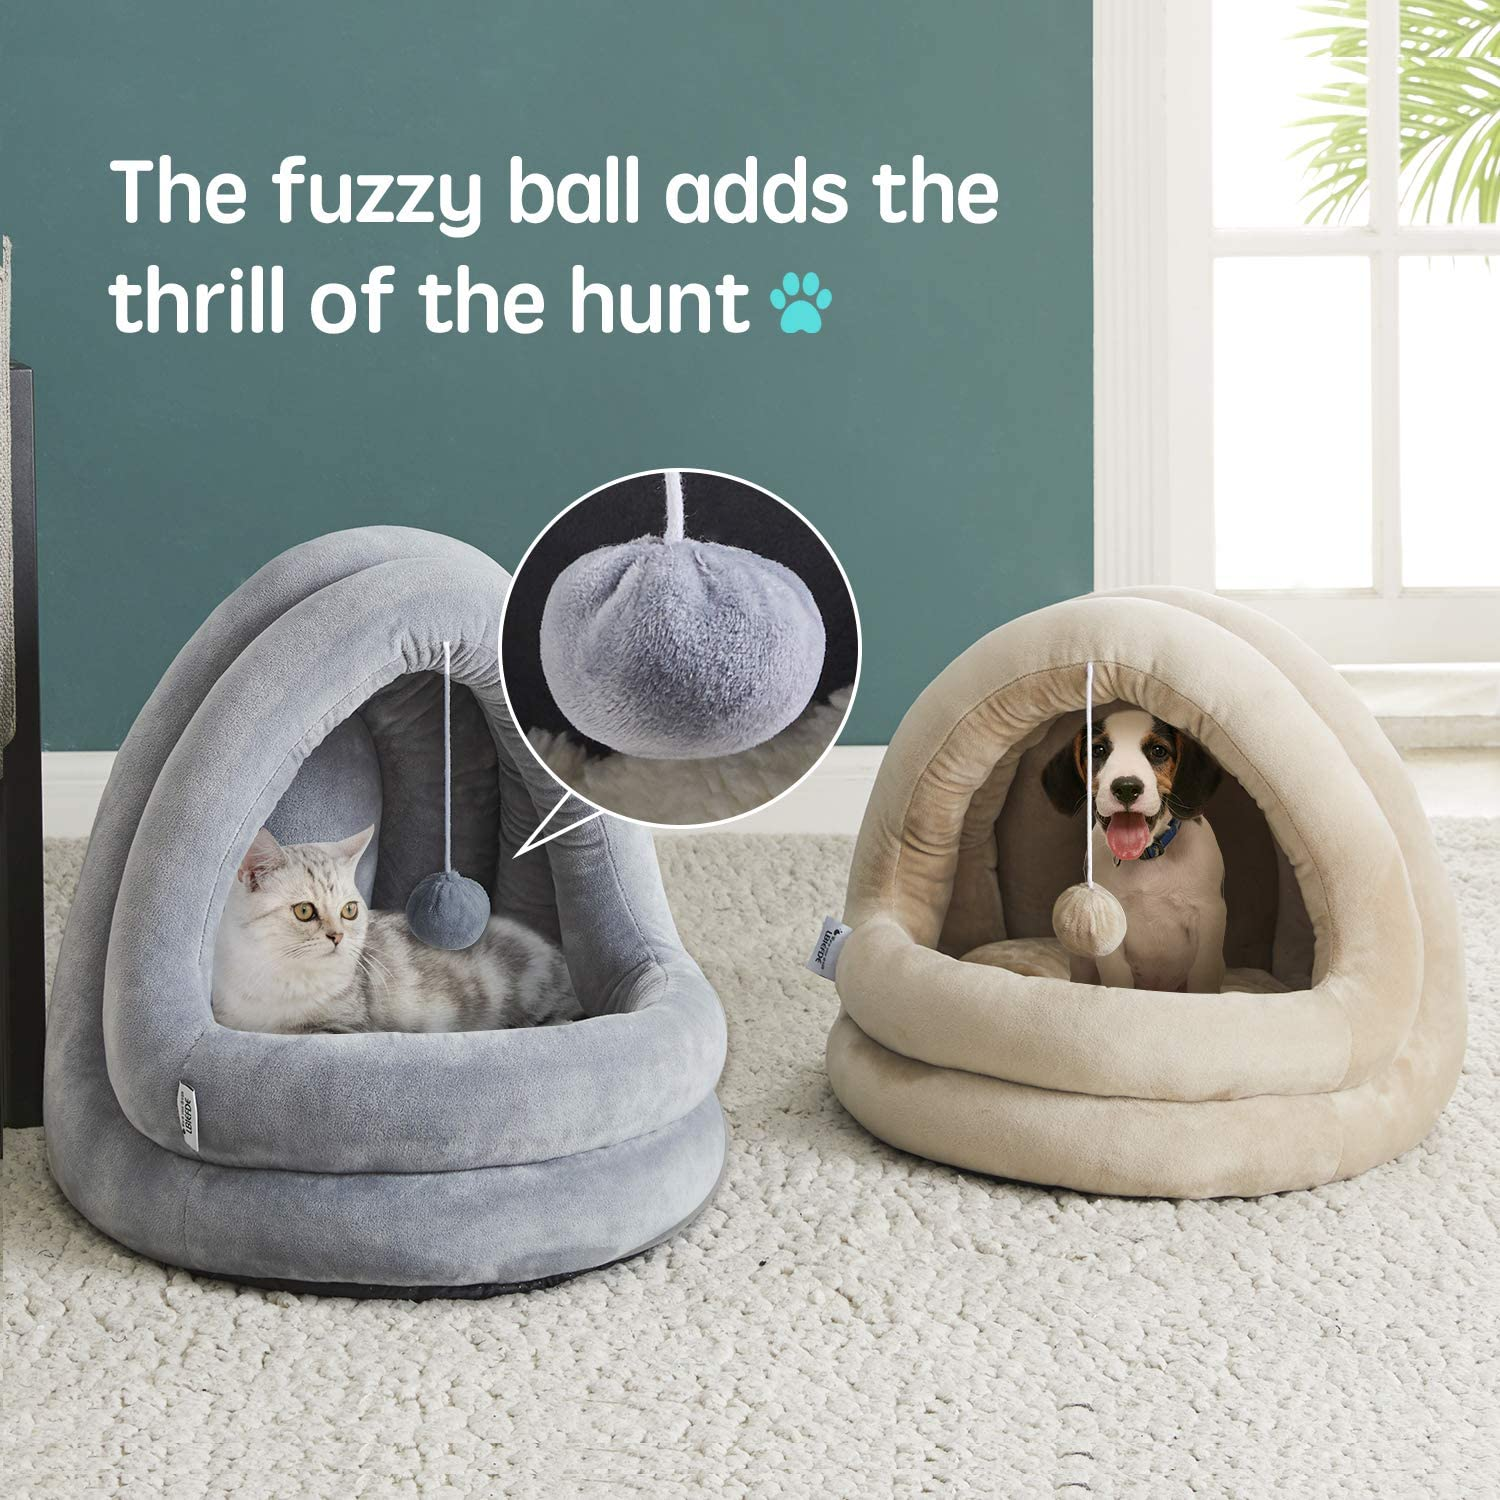 2 in 1 Machine Washable Cat Beds Super Soft Pet Supplies Anti-Slip /& Water-Resistant Bottom WESTERN HOME WH Cat Bed for Indoor Cats Large Pet Tent Soft Cave Bed for Dogs and Small Cats